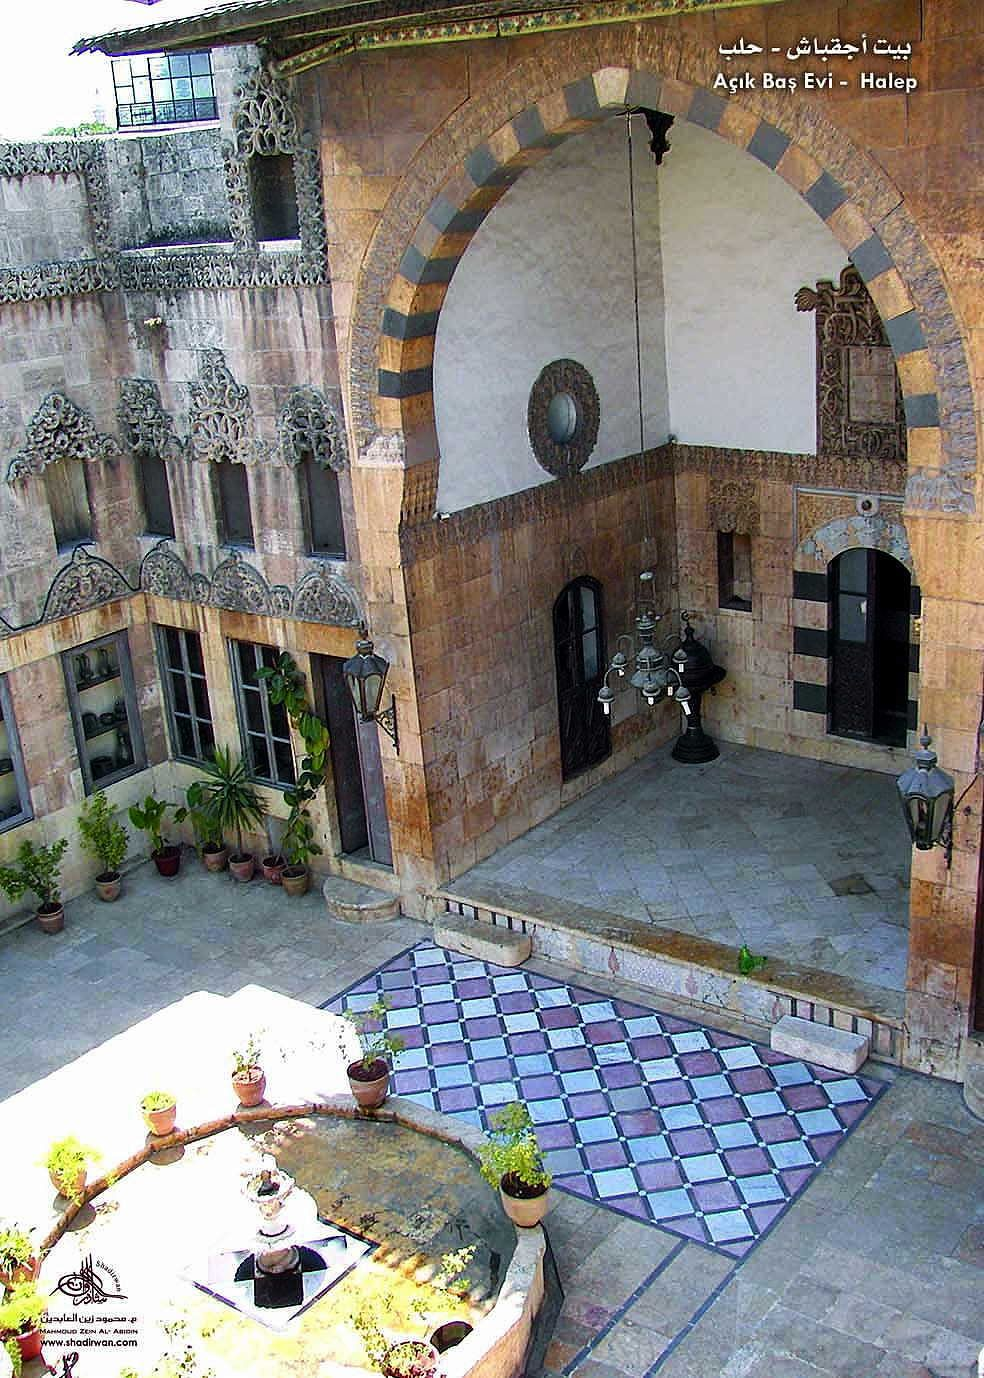 The Courtyard Houses of Syria